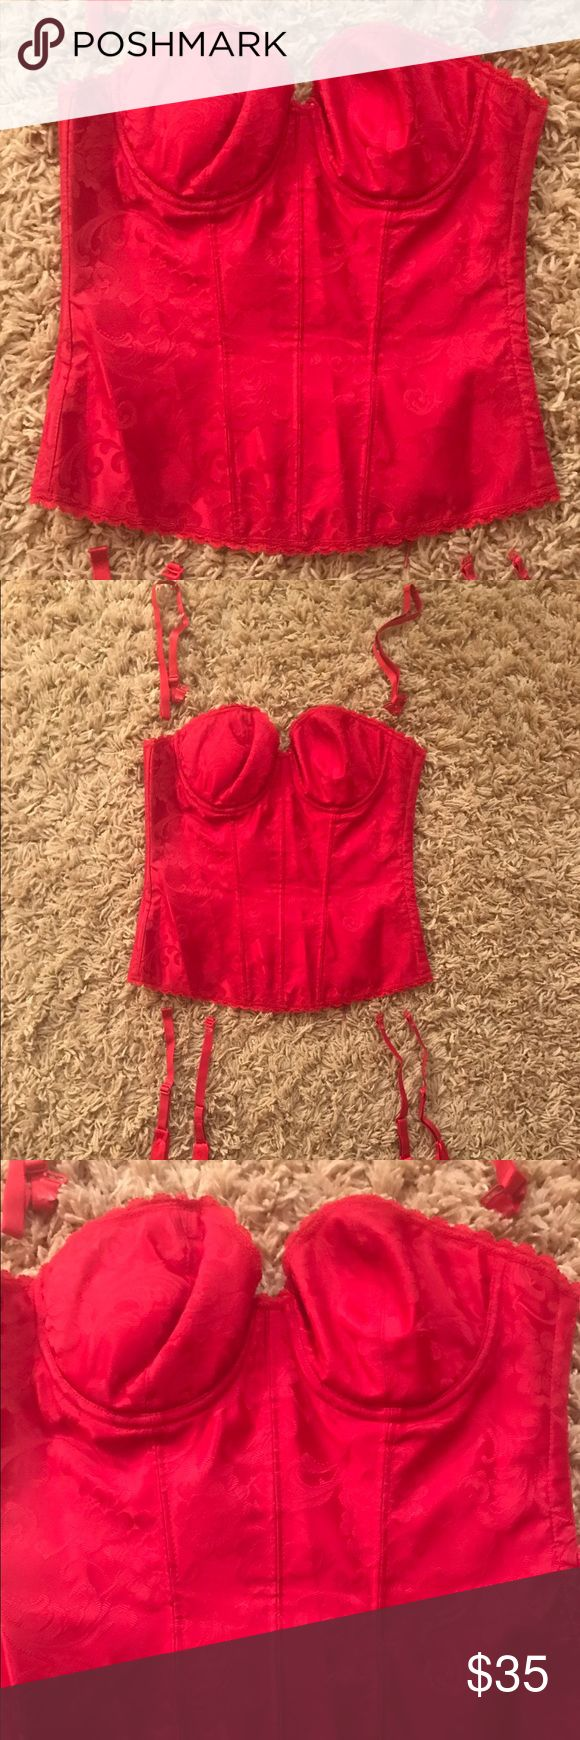 Frederick's Hollywood Red Floral Brocade Corset 34 Frederick's of Hollywood Red Floral Brocade Corset. Size 34. Previously owned condition. Optional garter straps and shoulder straps included. Padded.  Strapless option.  So feminine! Offers considered. Frederick's of Hollywood Intimates & Sleepwear